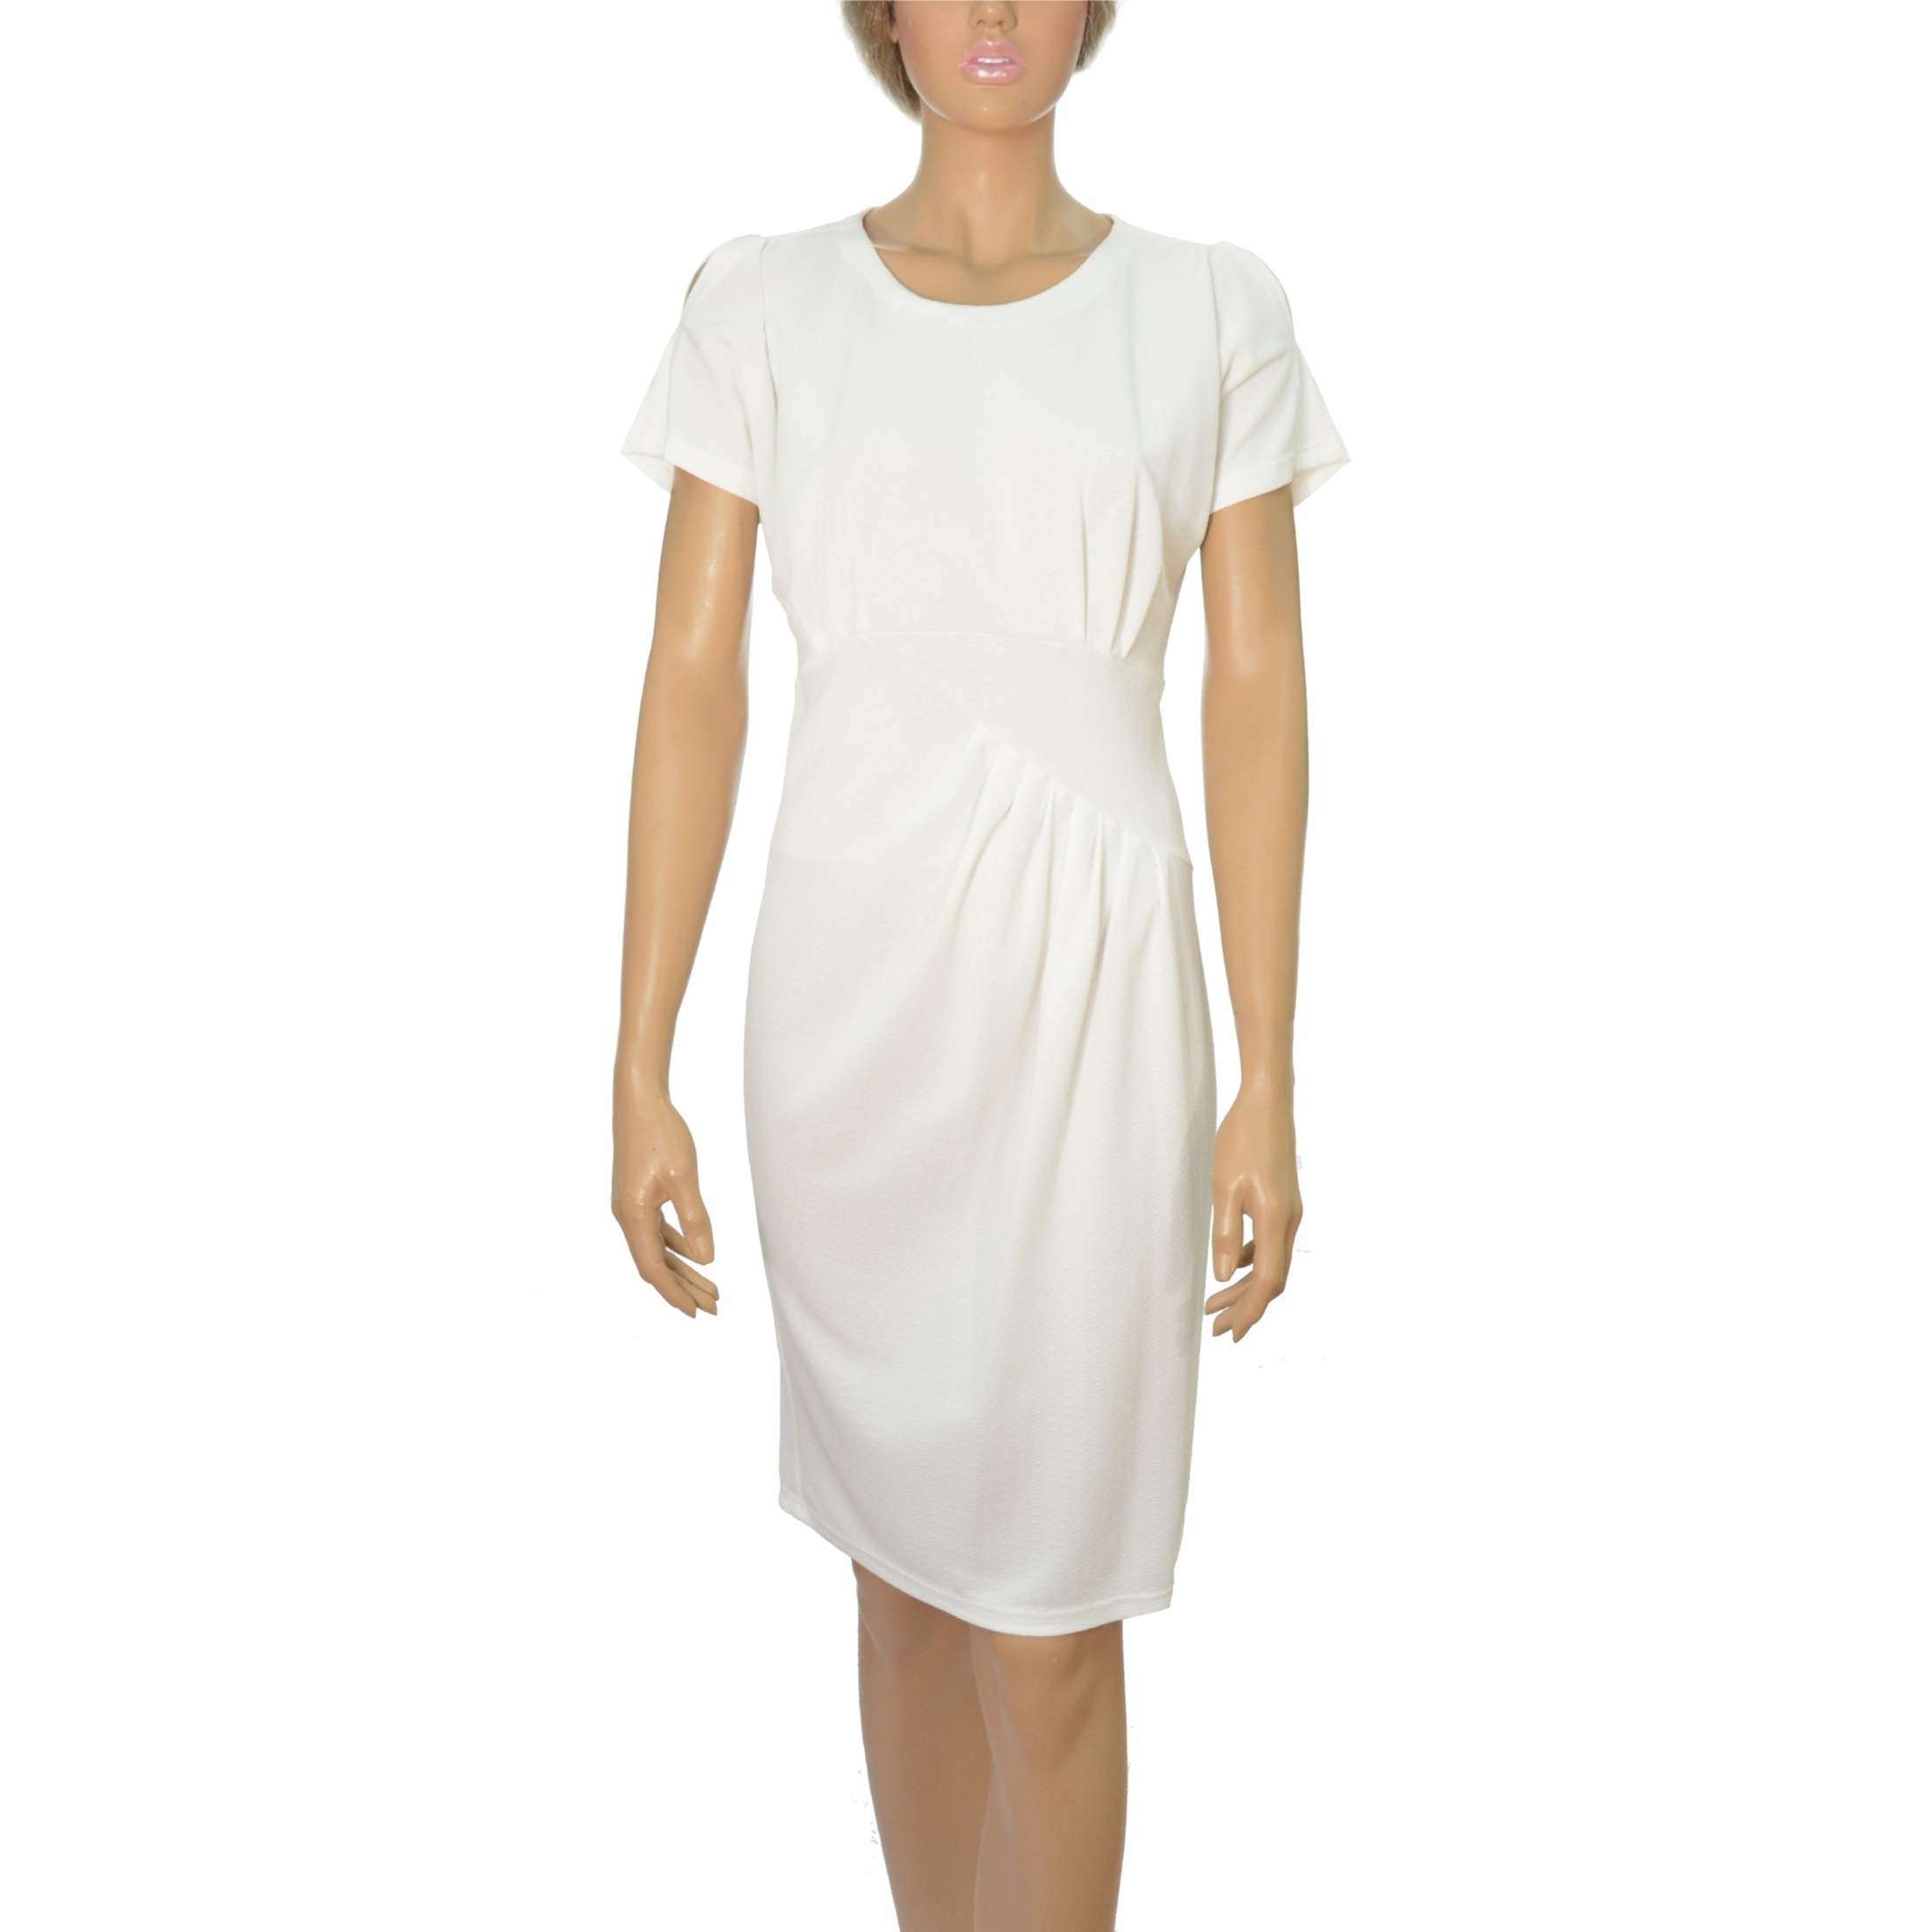 Picture of Women's Dress - LM451353 WHITE